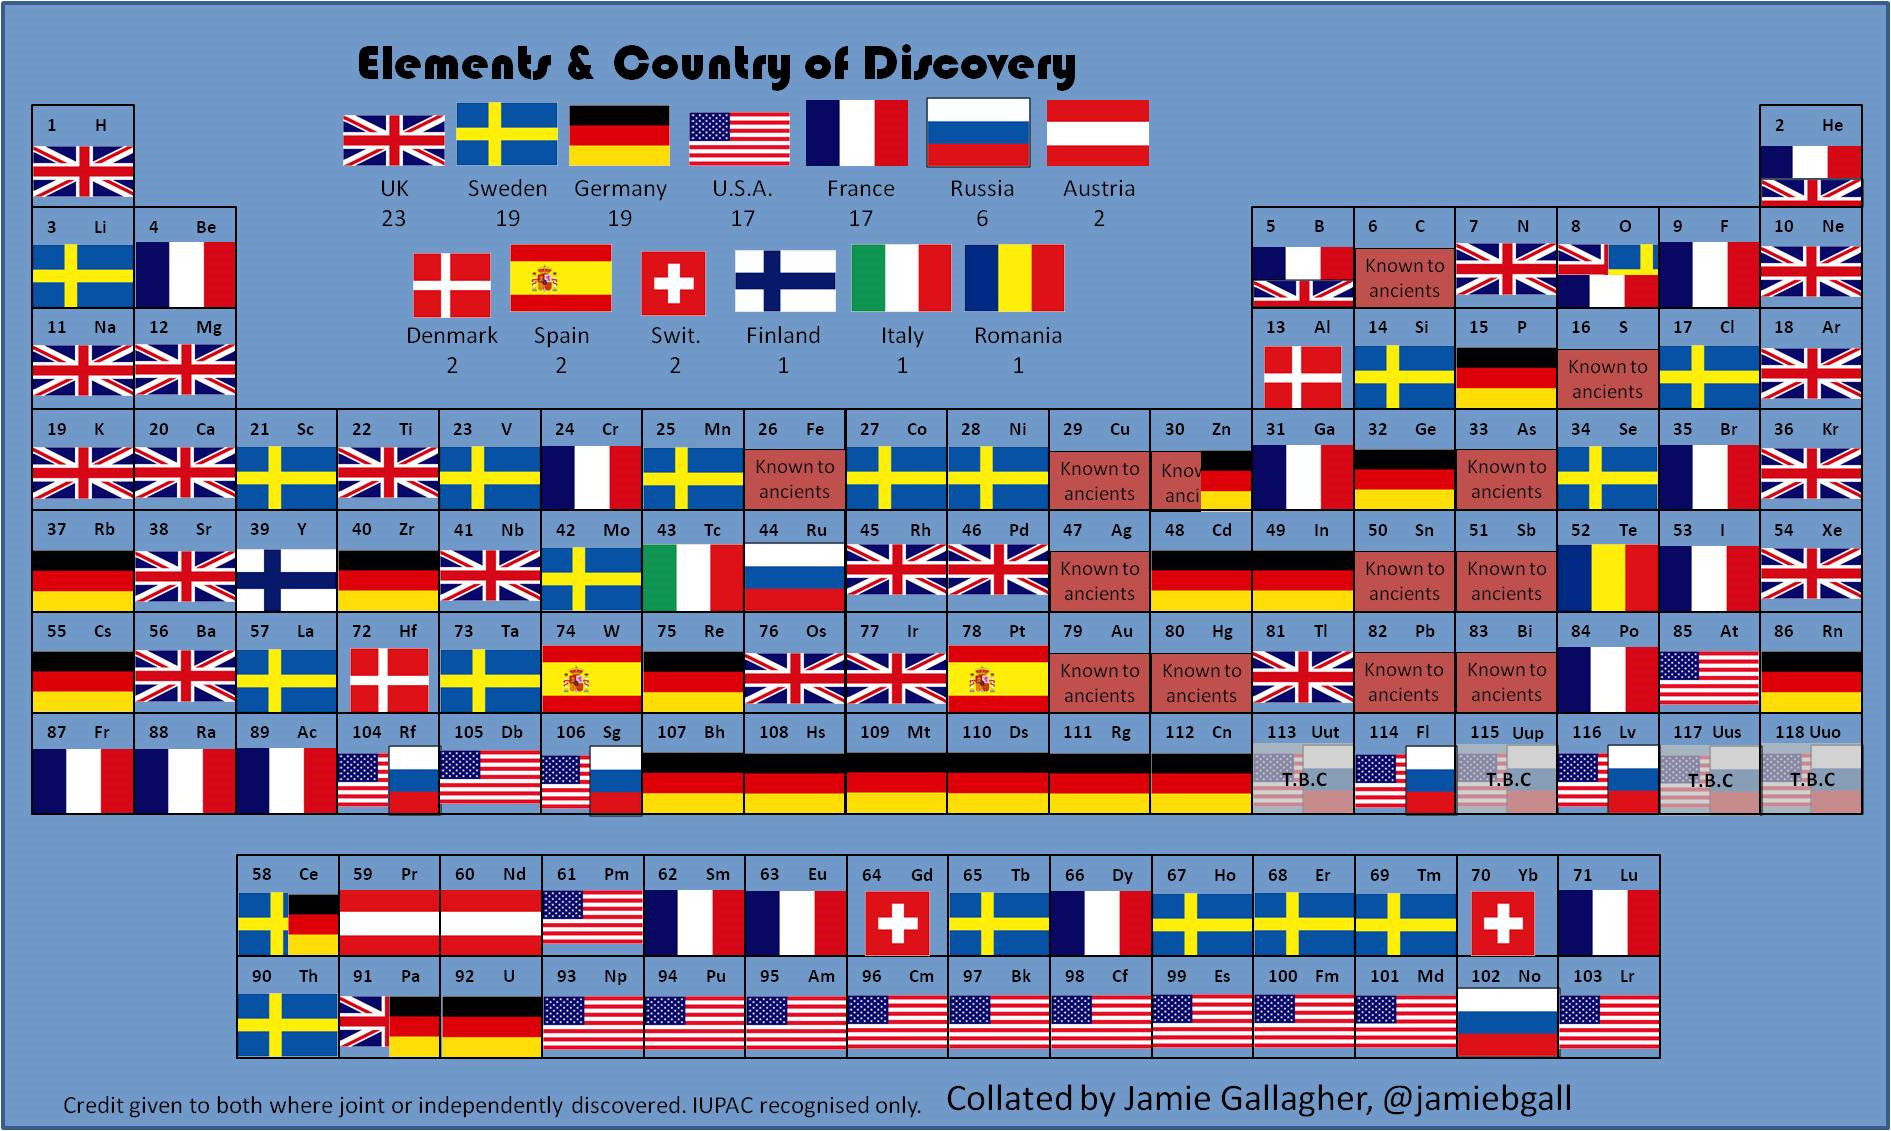 Inert gas periodic table choice image periodic table images noble gas into the void science periodic table by country of discovery gamestrikefo choice image gamestrikefo Choice Image